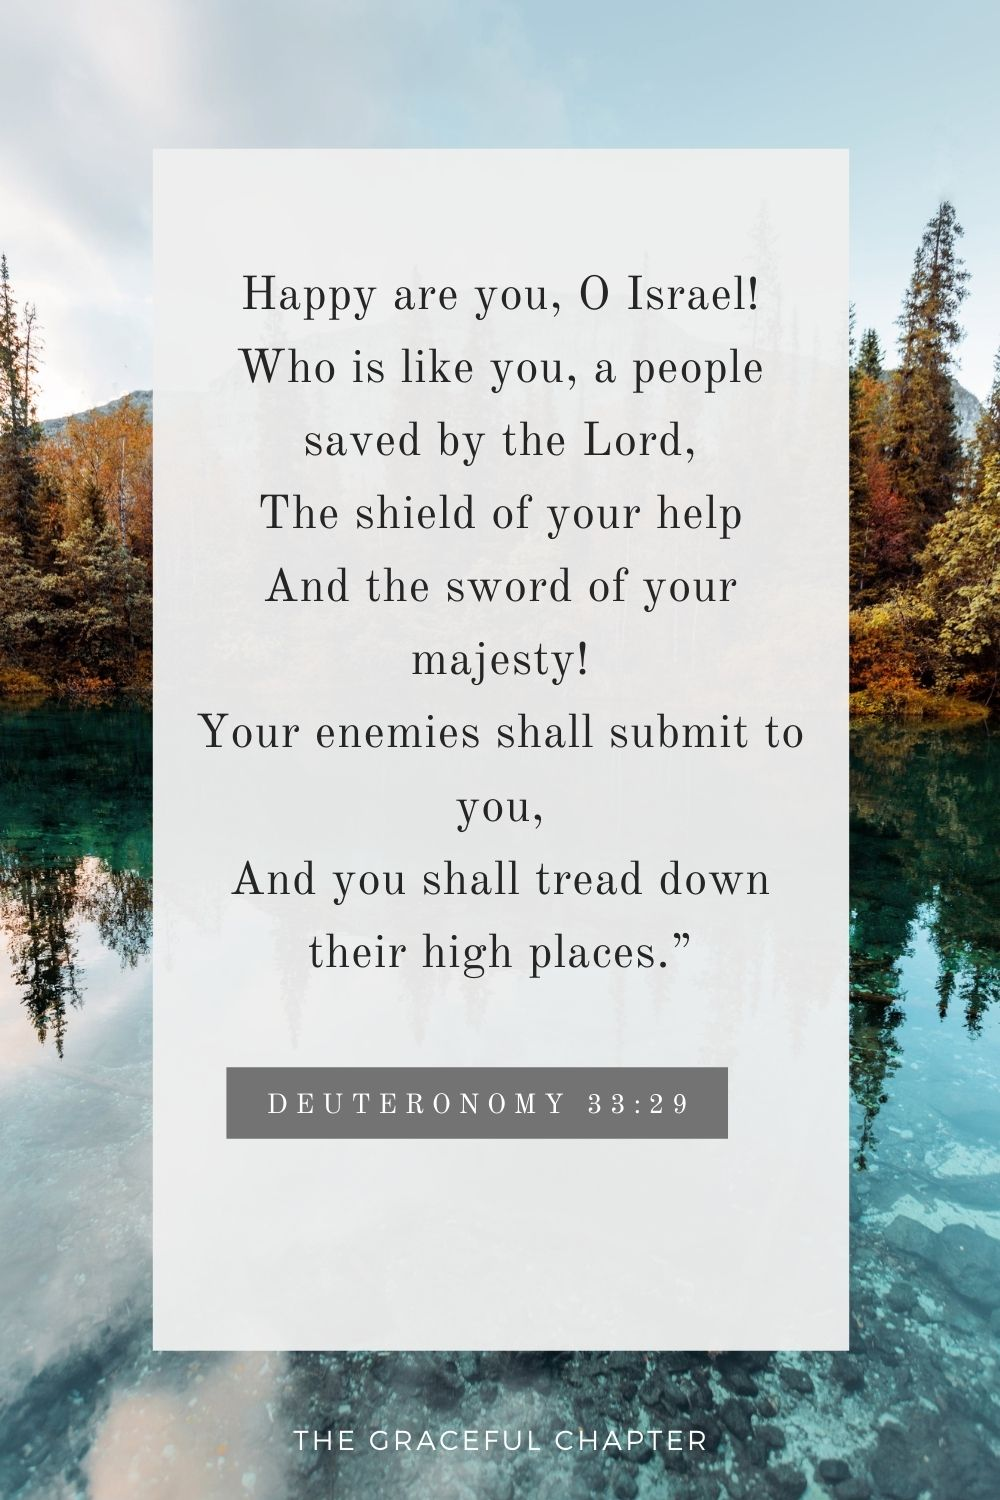 """Happy are you, O Israel! Who is like you, a people saved by the Lord, The shield of your help And the sword of your majesty! Your enemies shall submit to you, And you shall tread down their high places."""" Deuteronomy 33:29"""